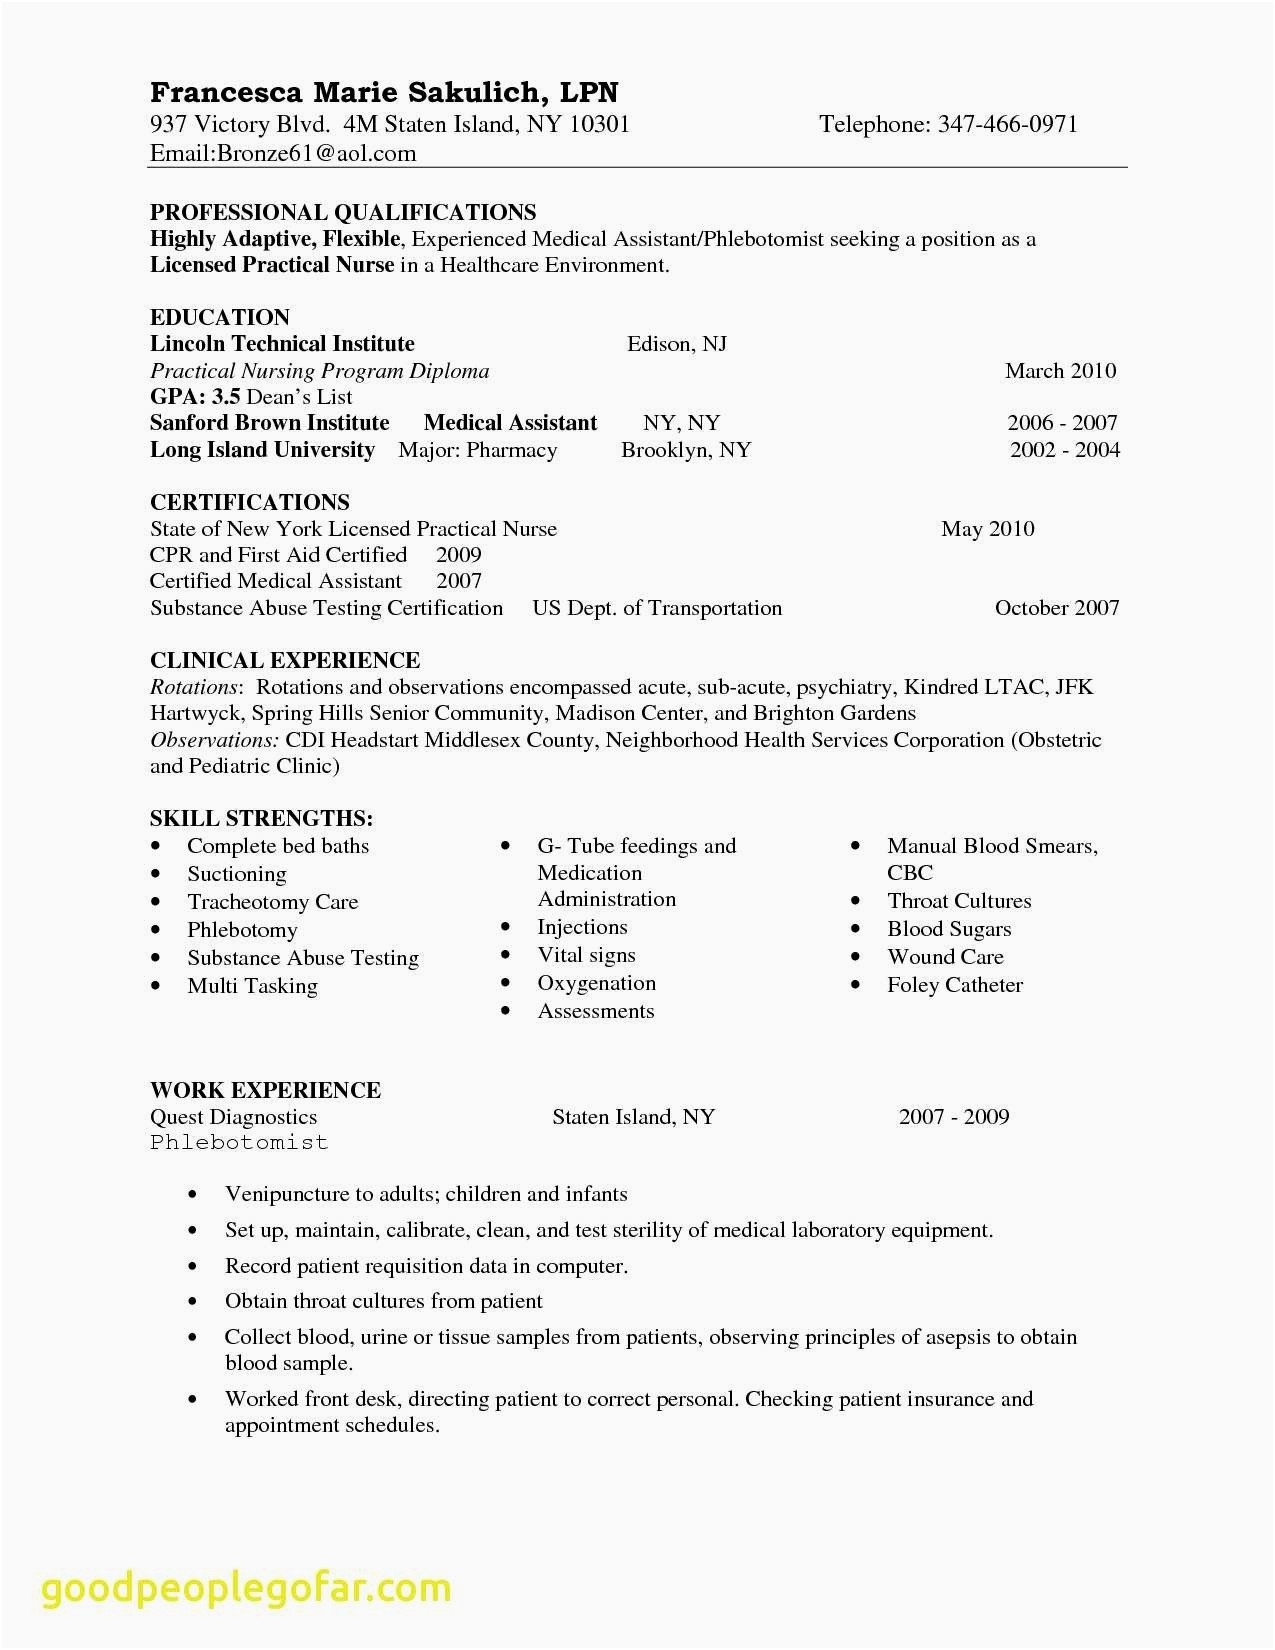 List Of Nursing Skills for Resume - 17 Fresh Nurse Resume Skills